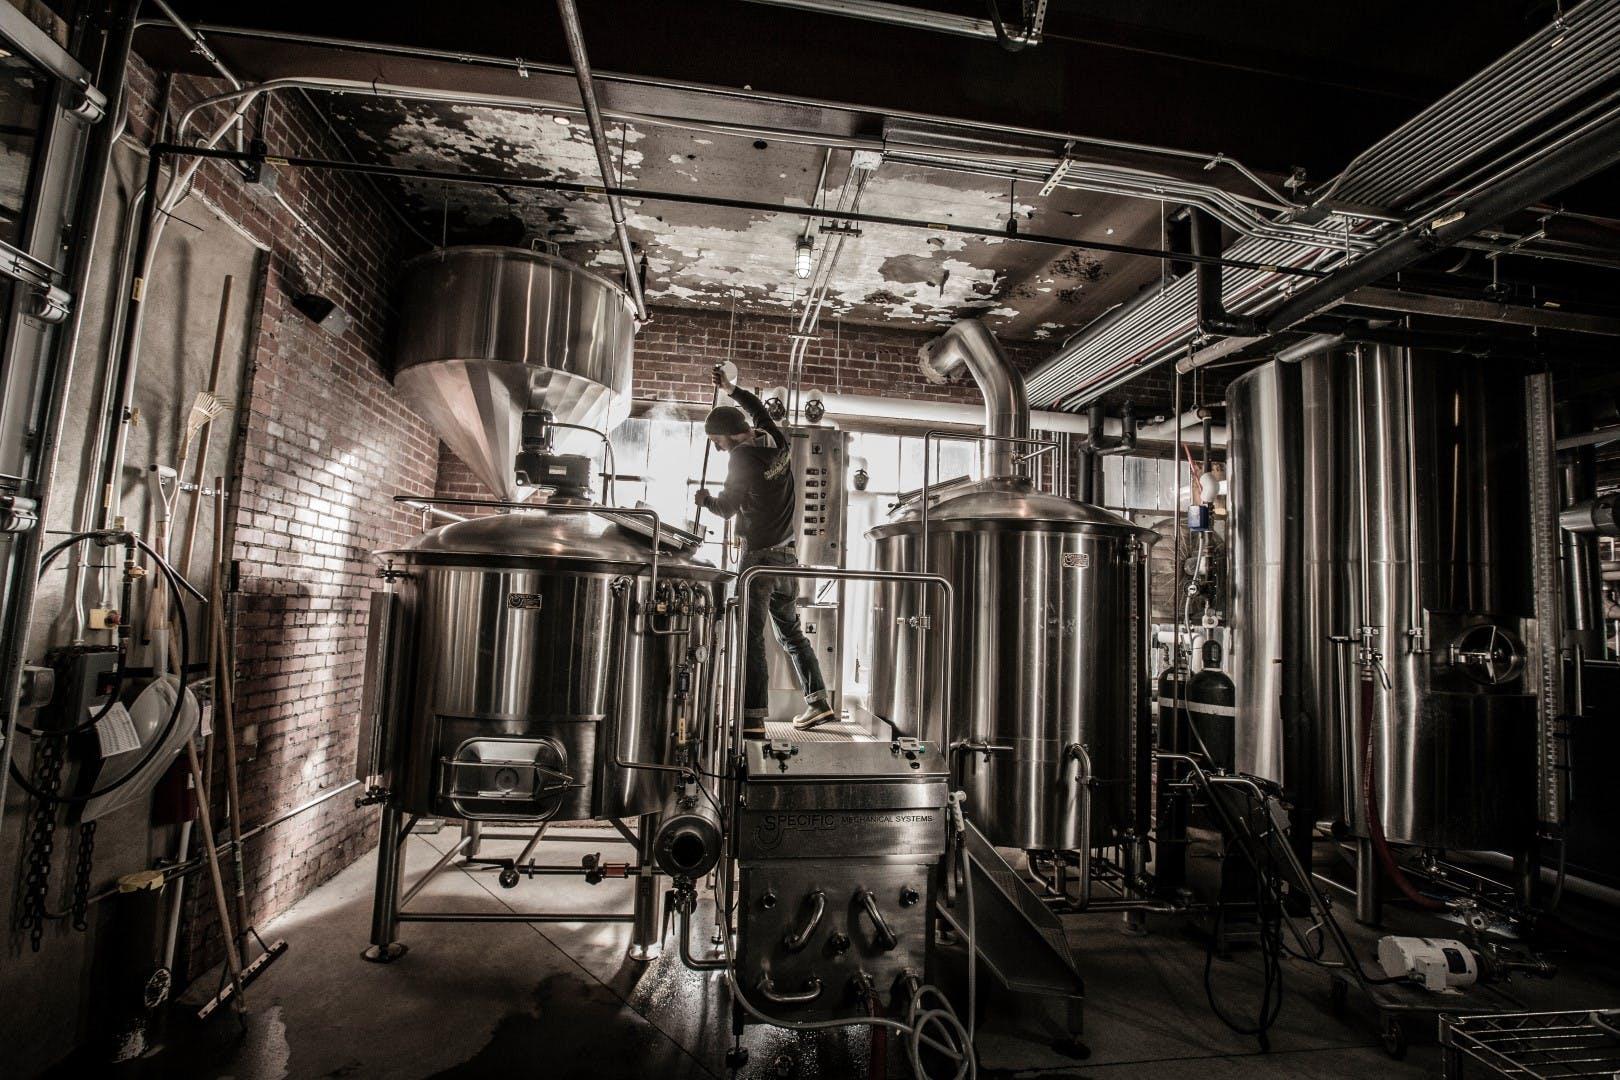 15 Barrel System Brewhouse sold by Specific Mechanical Systems